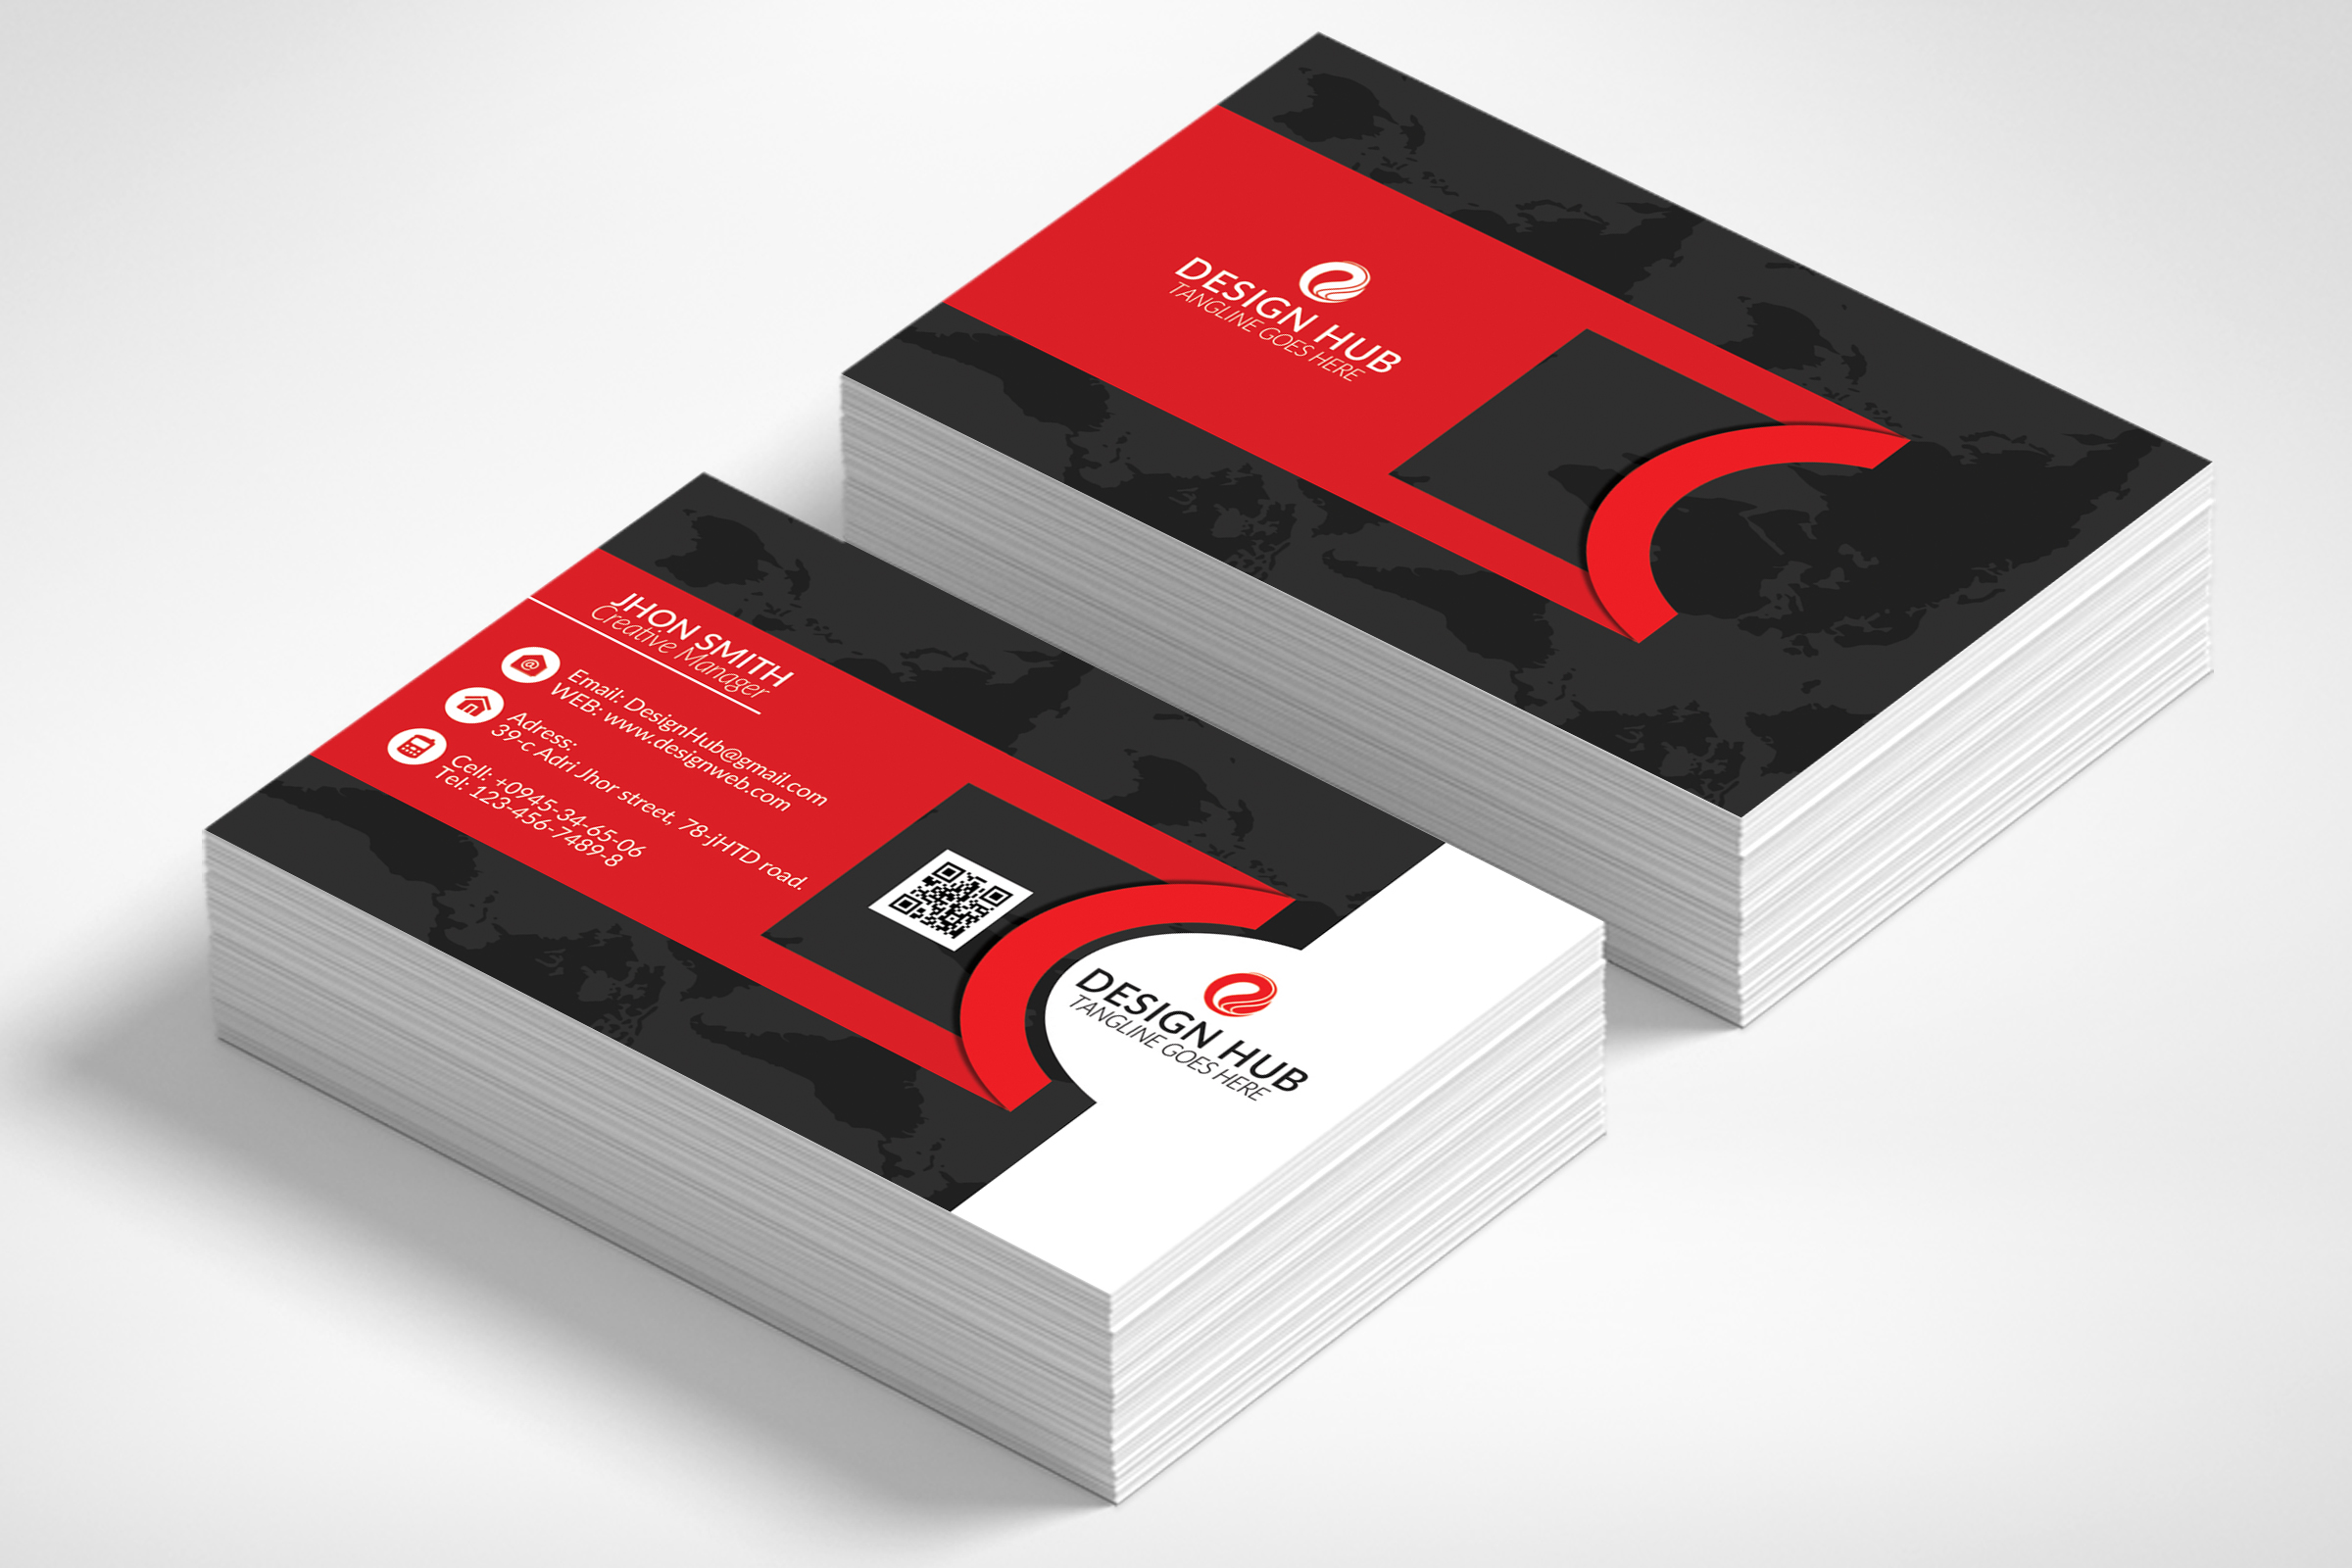 Stylish Business Cards Template example image 1